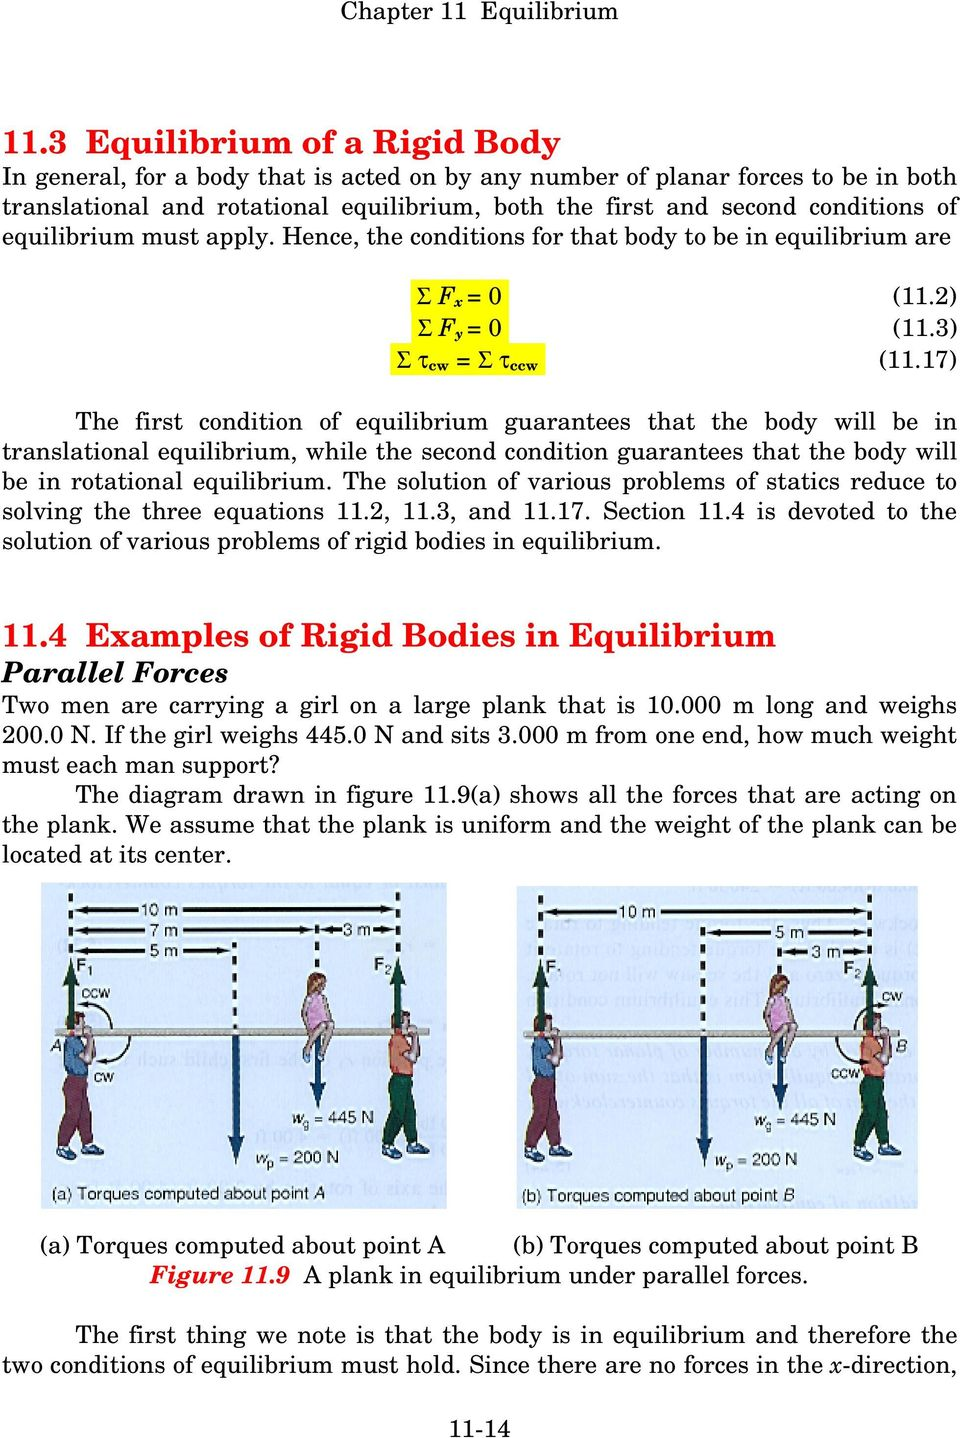 17) The first condition of equilibrium guarantees that the body will be in translational equilibrium, while the second condition guarantees that the body will be in rotational equilibrium.